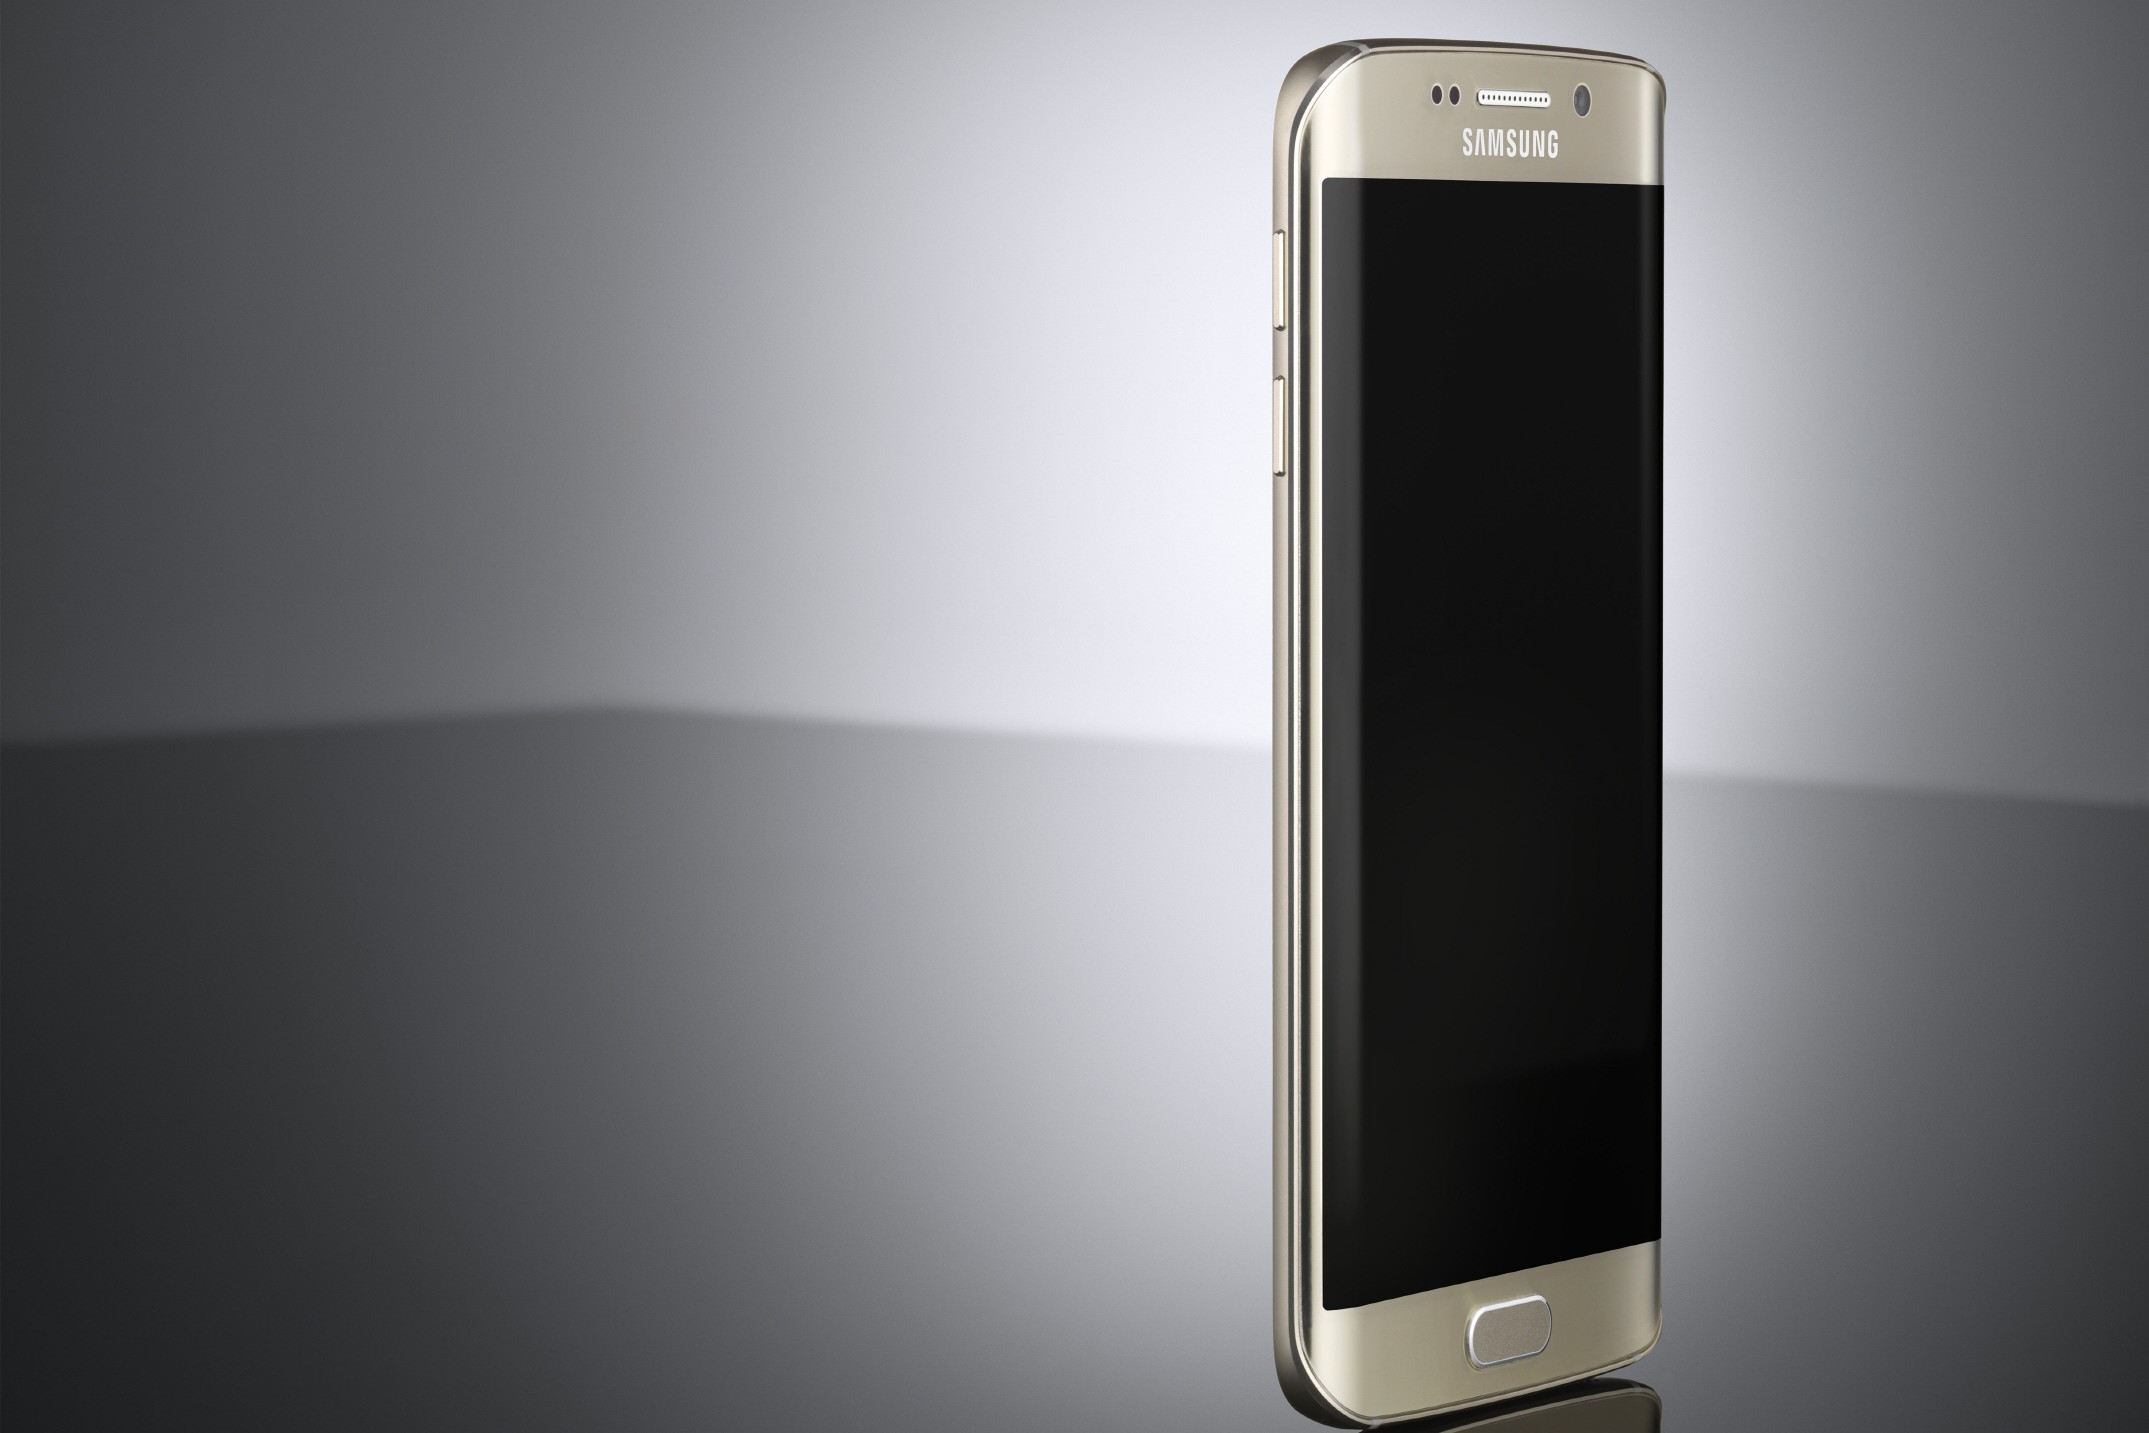 The Galaxy S6 Edge, one of the first devices to get Samsung Pay